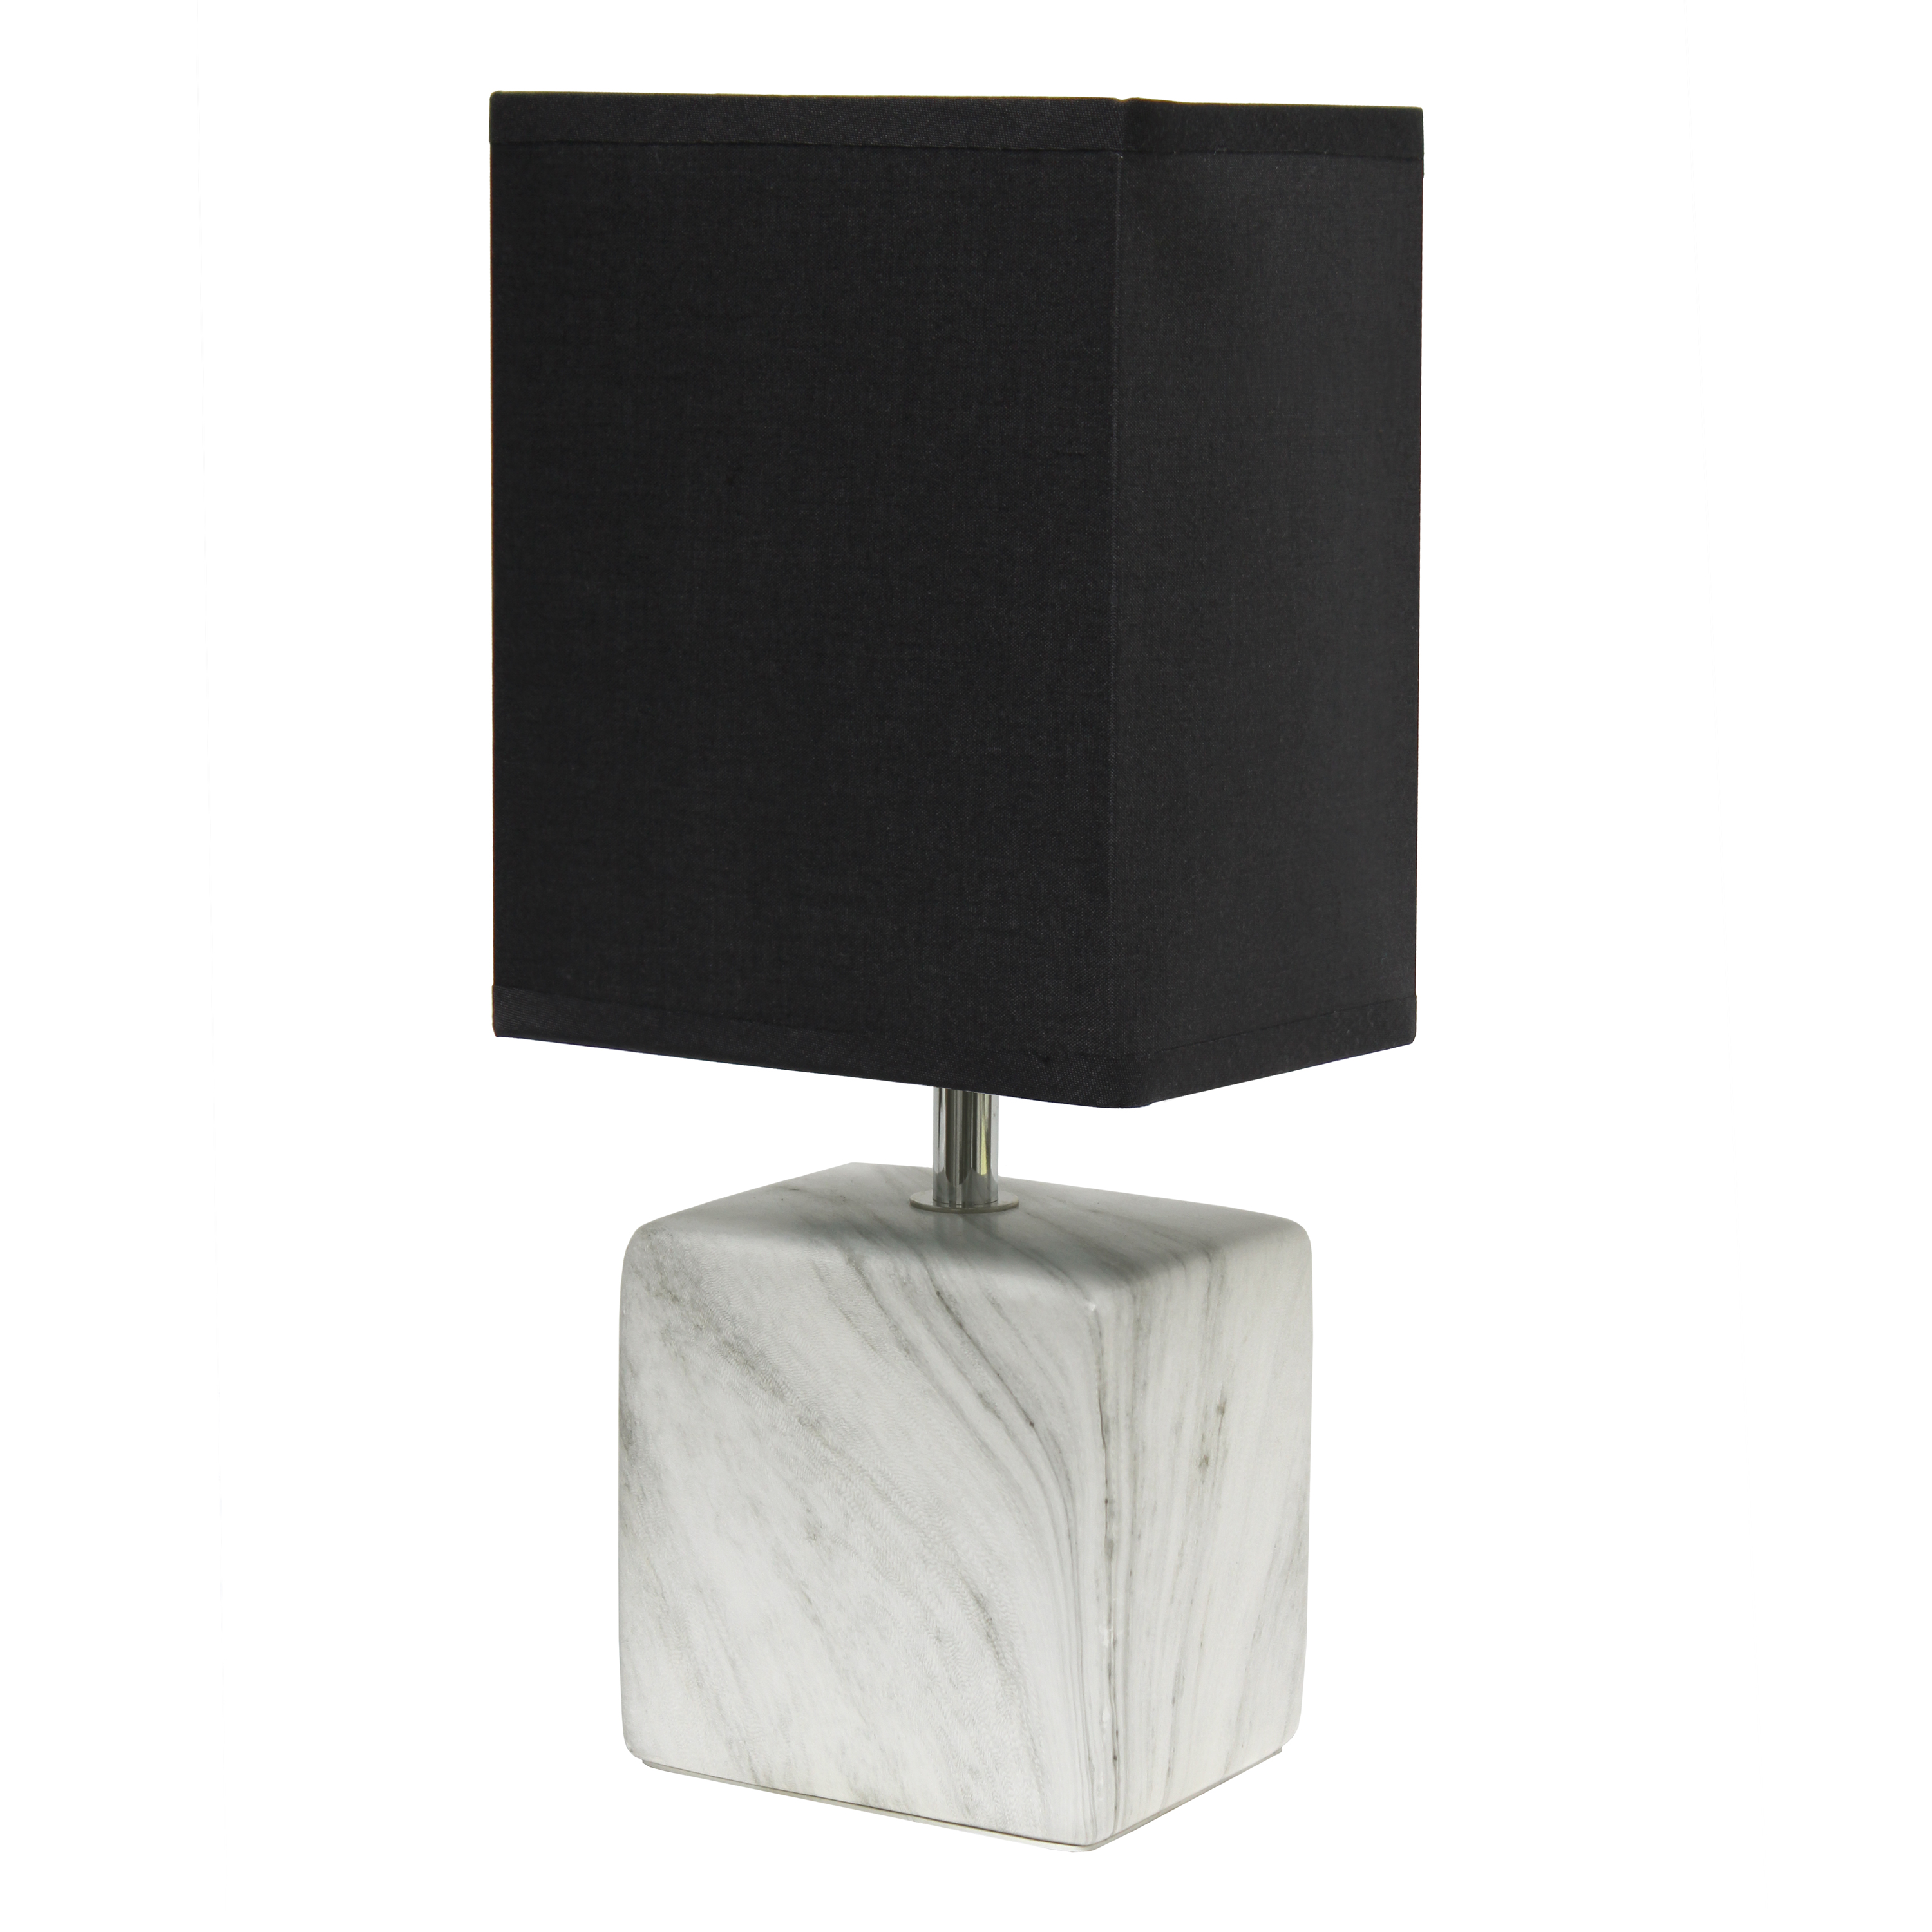 Simple Designs Petite Marbled Ceramic Table Lamp with Fabric Shade, White with Black Shade